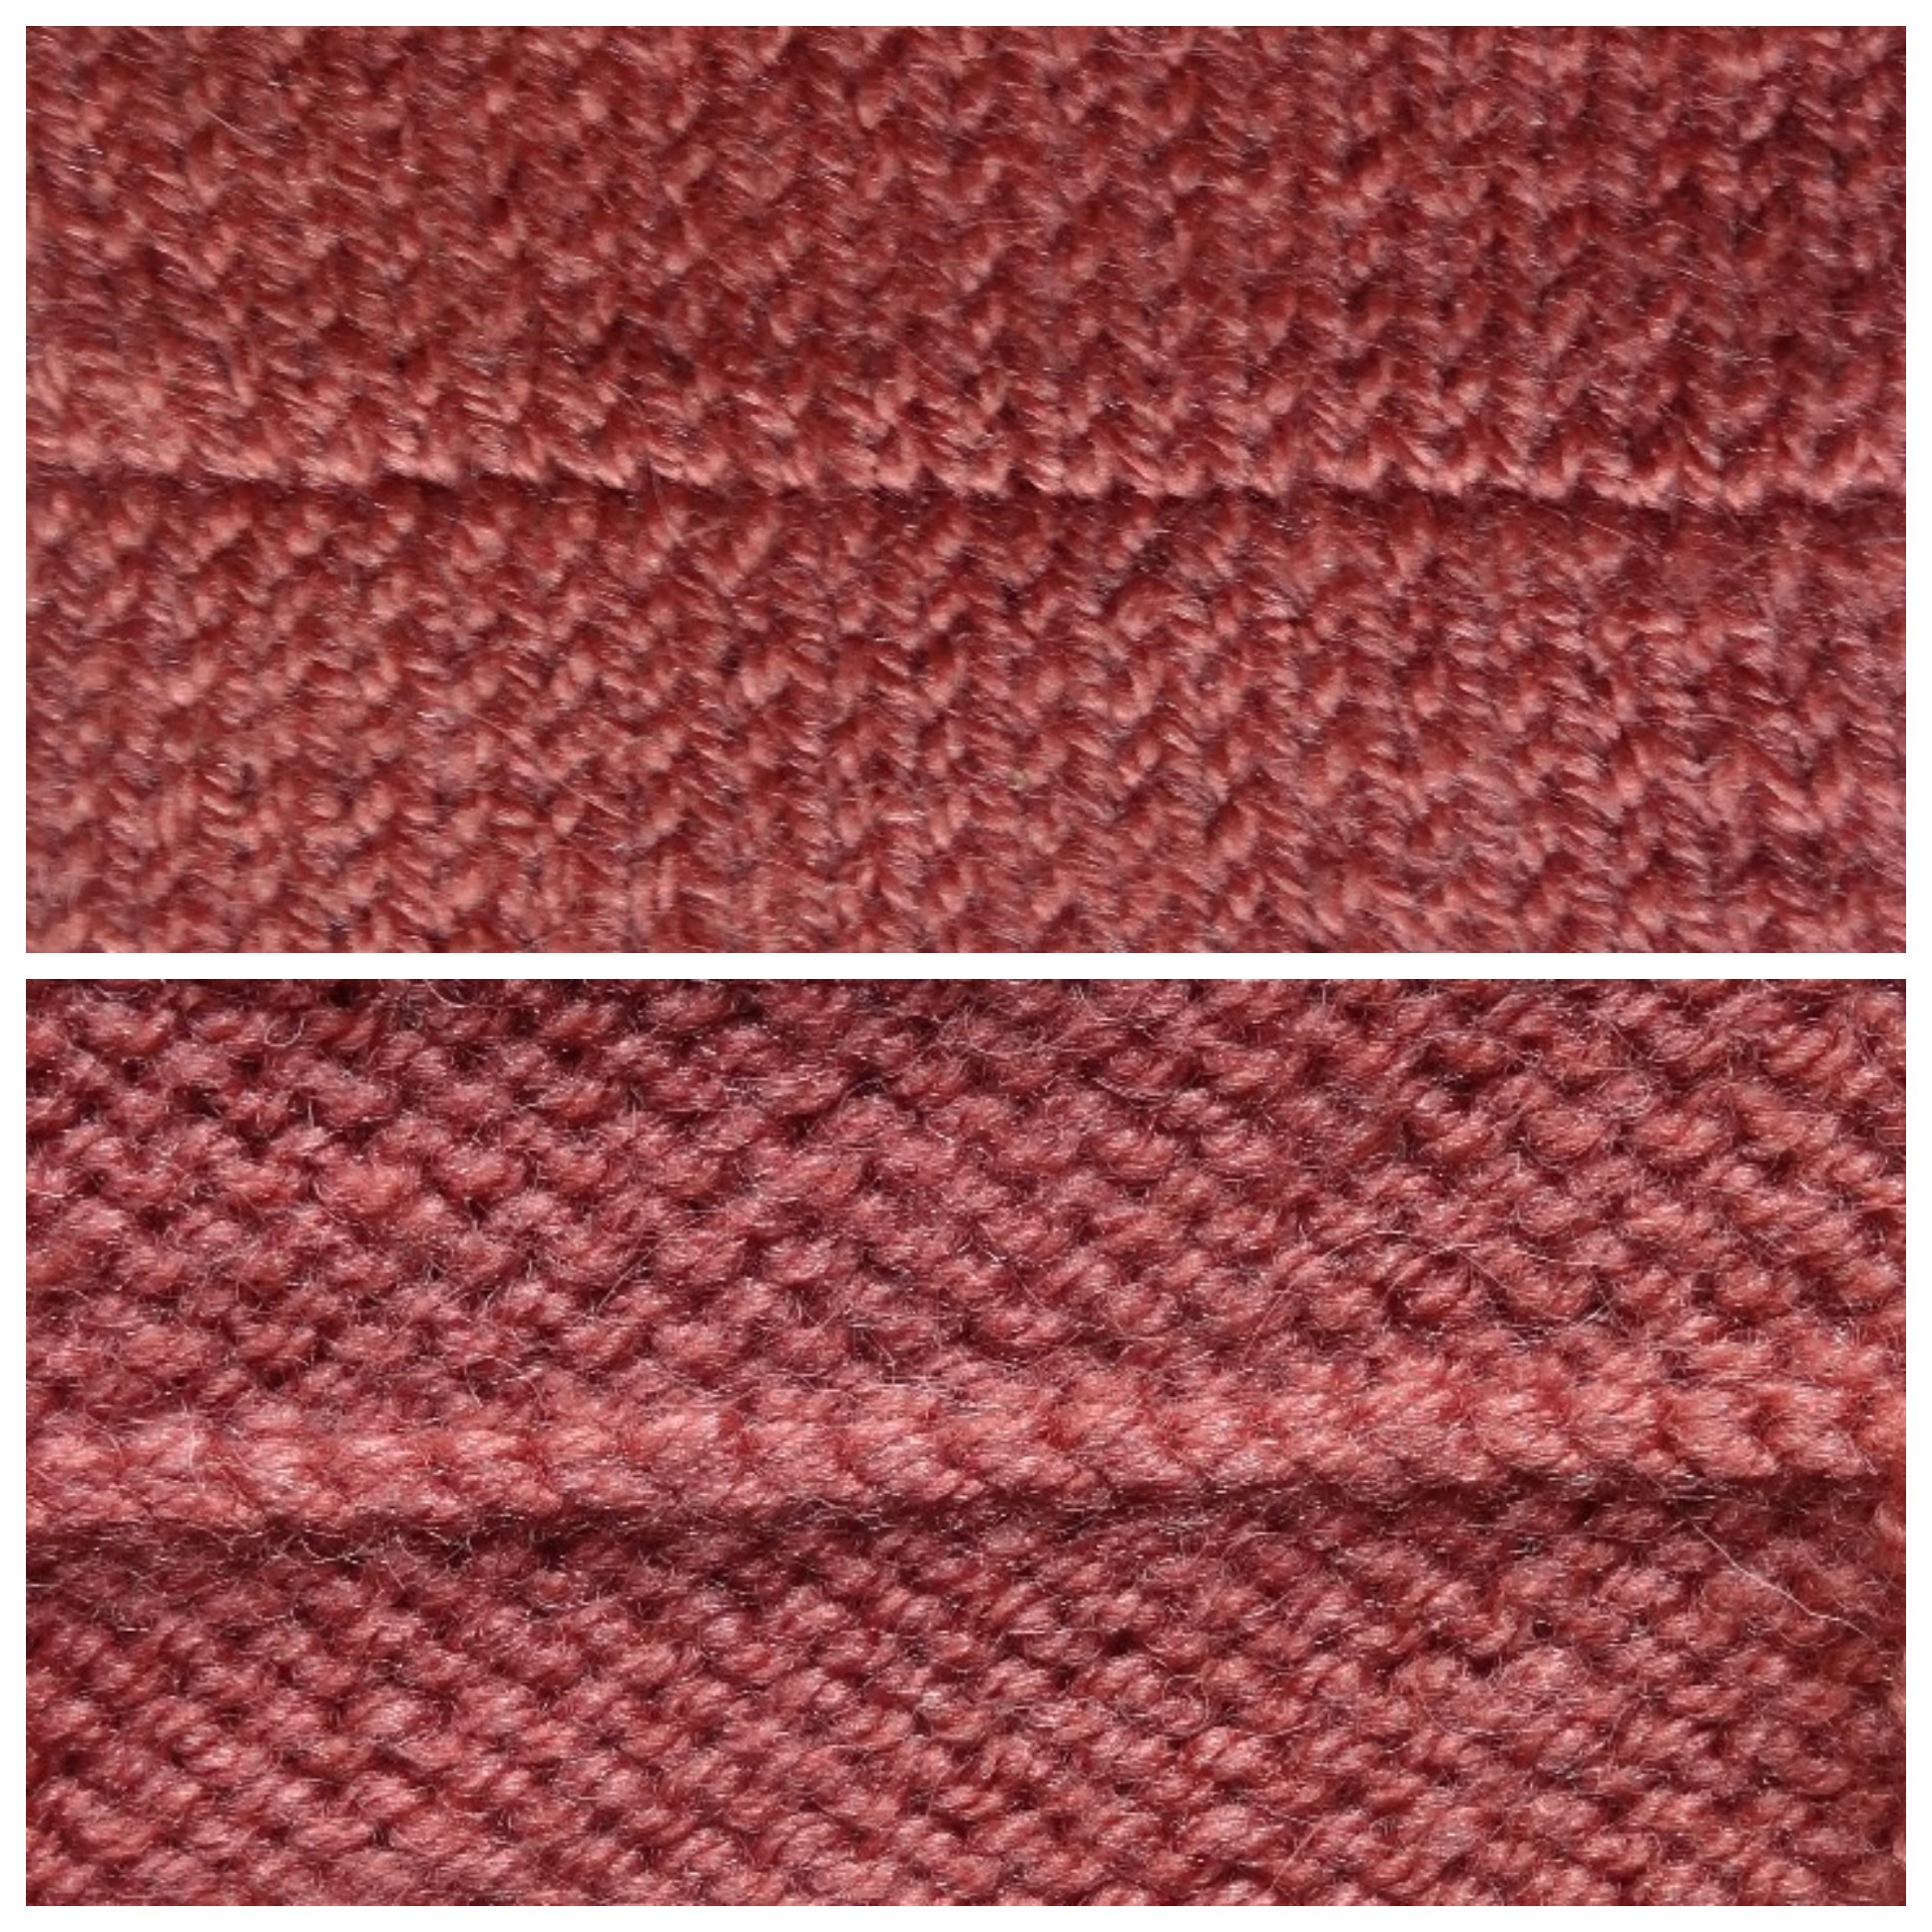 Knitting Stitches 3 Needle Bind Off : C&G Hand Knit Textiles   Module 3